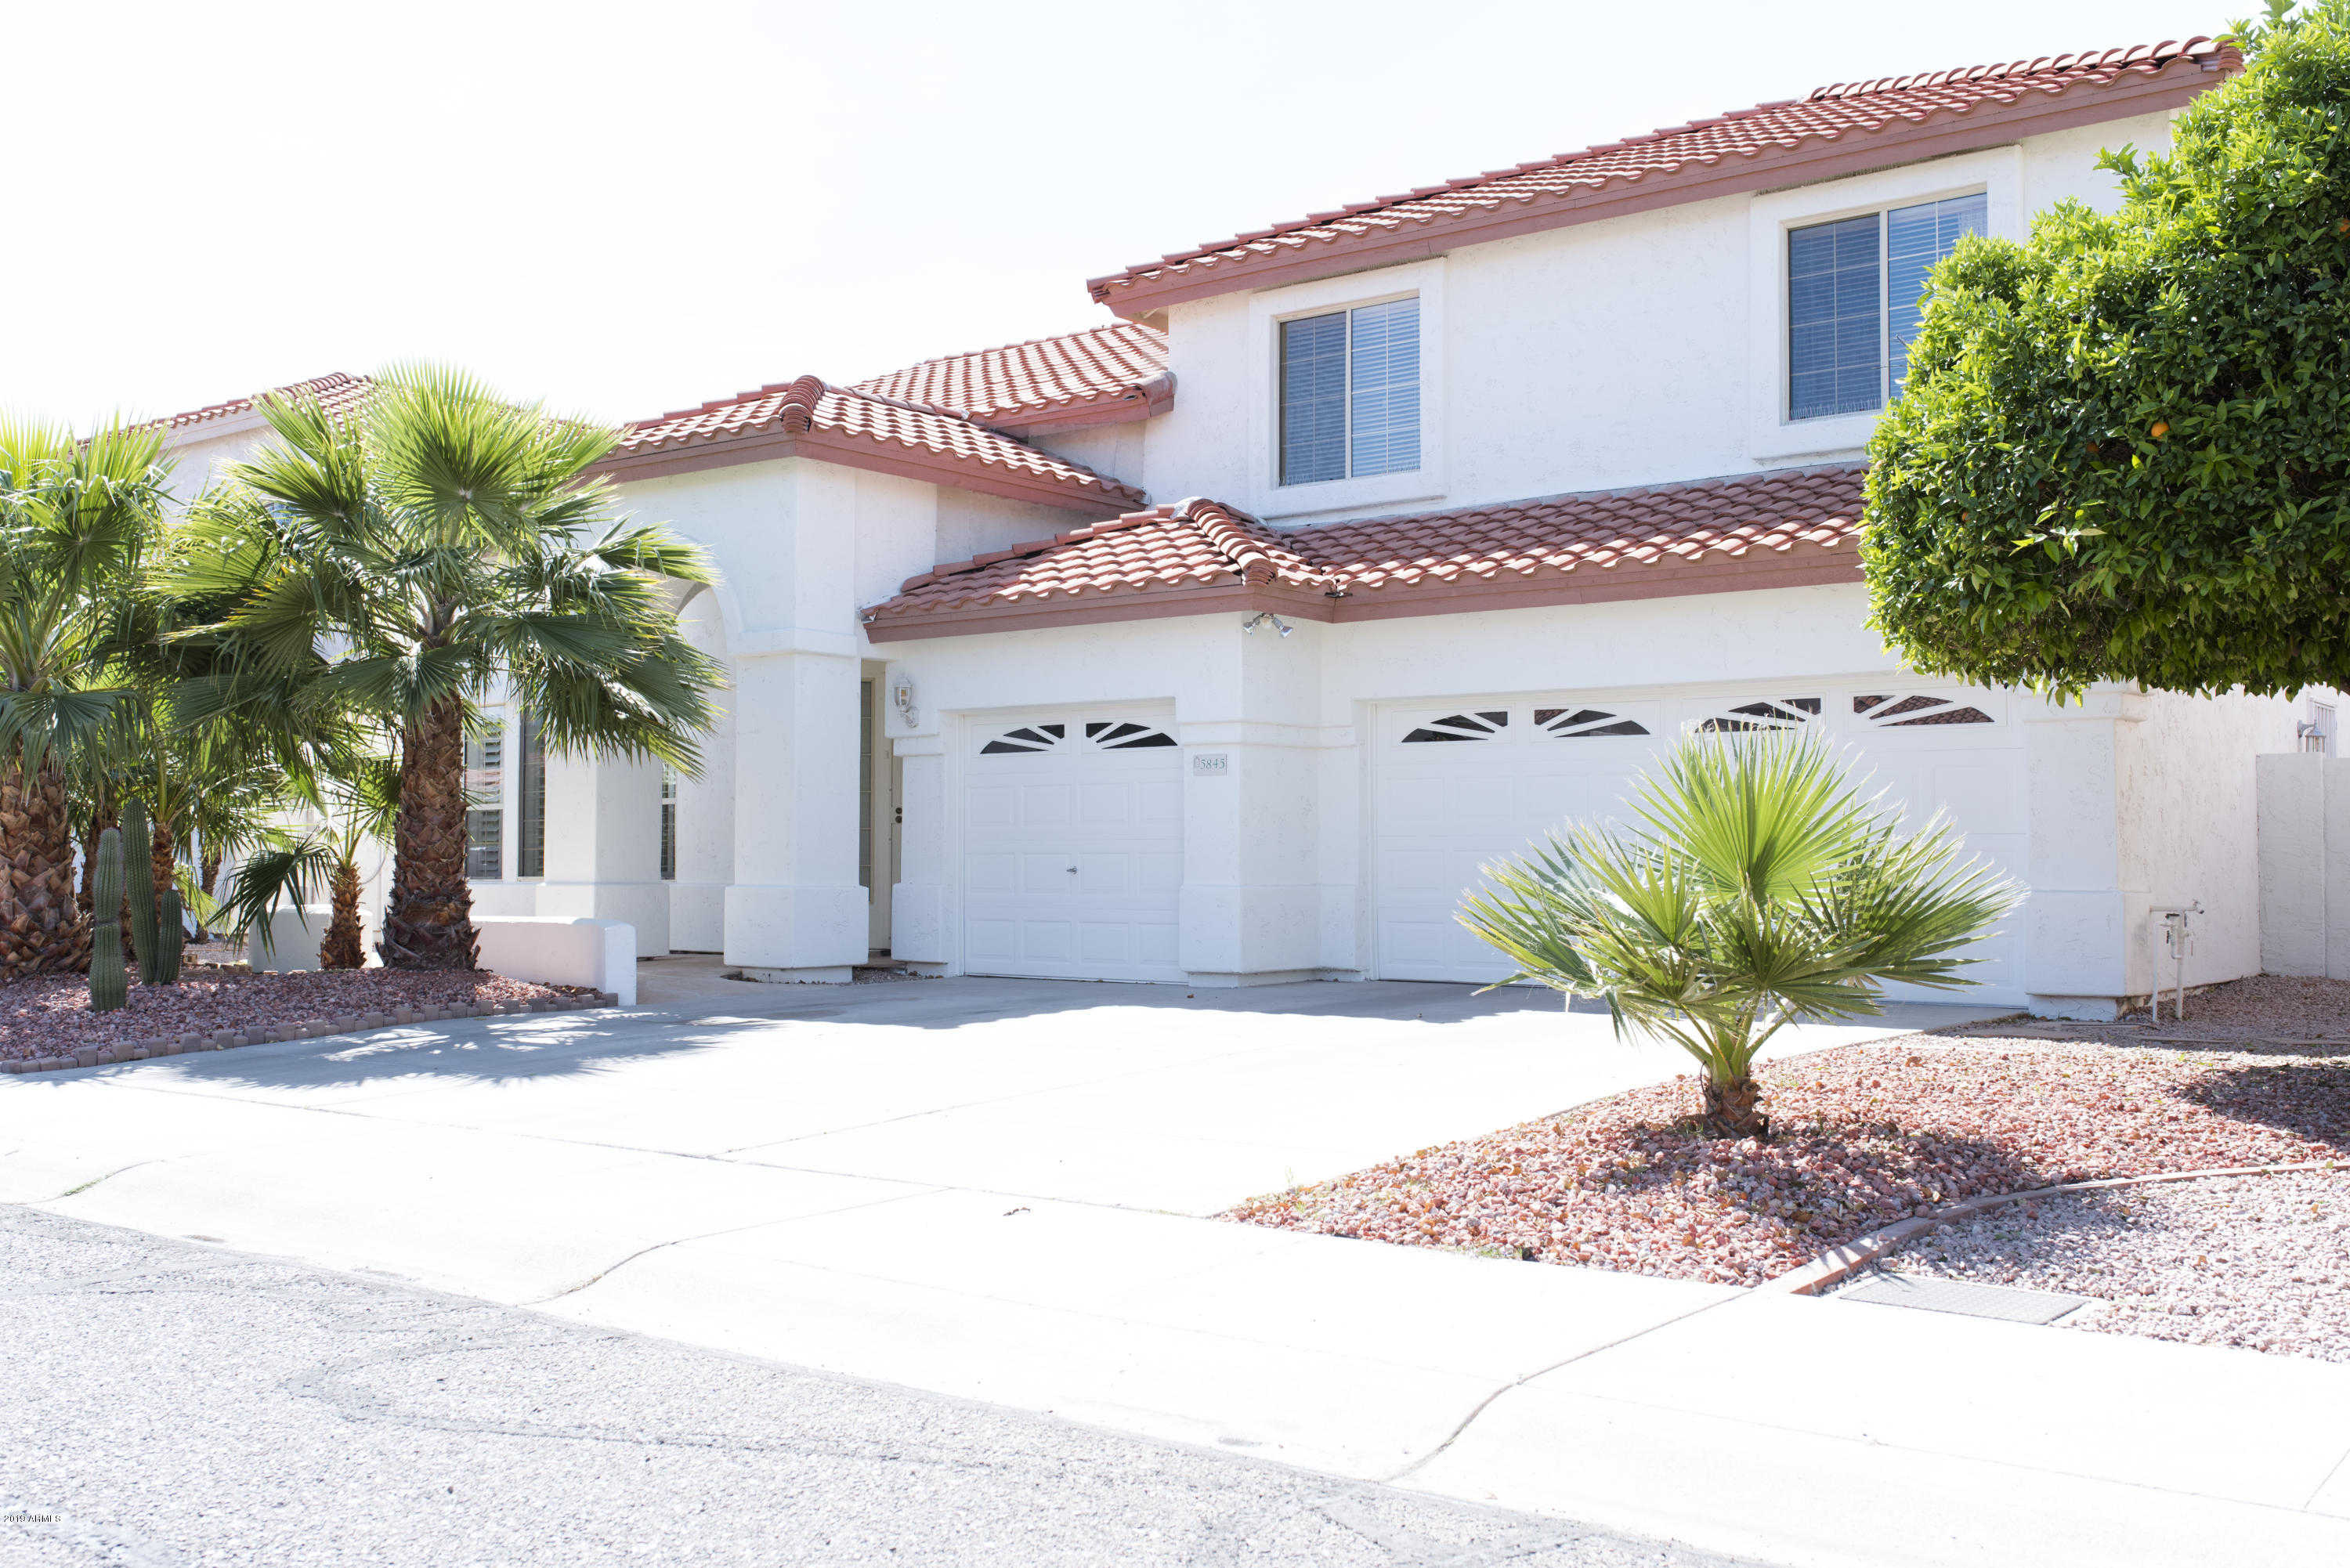 $365,000 - 4Br/3Ba - Home for Sale in Mission Groves 3 At Marshall Ranch, Glendale